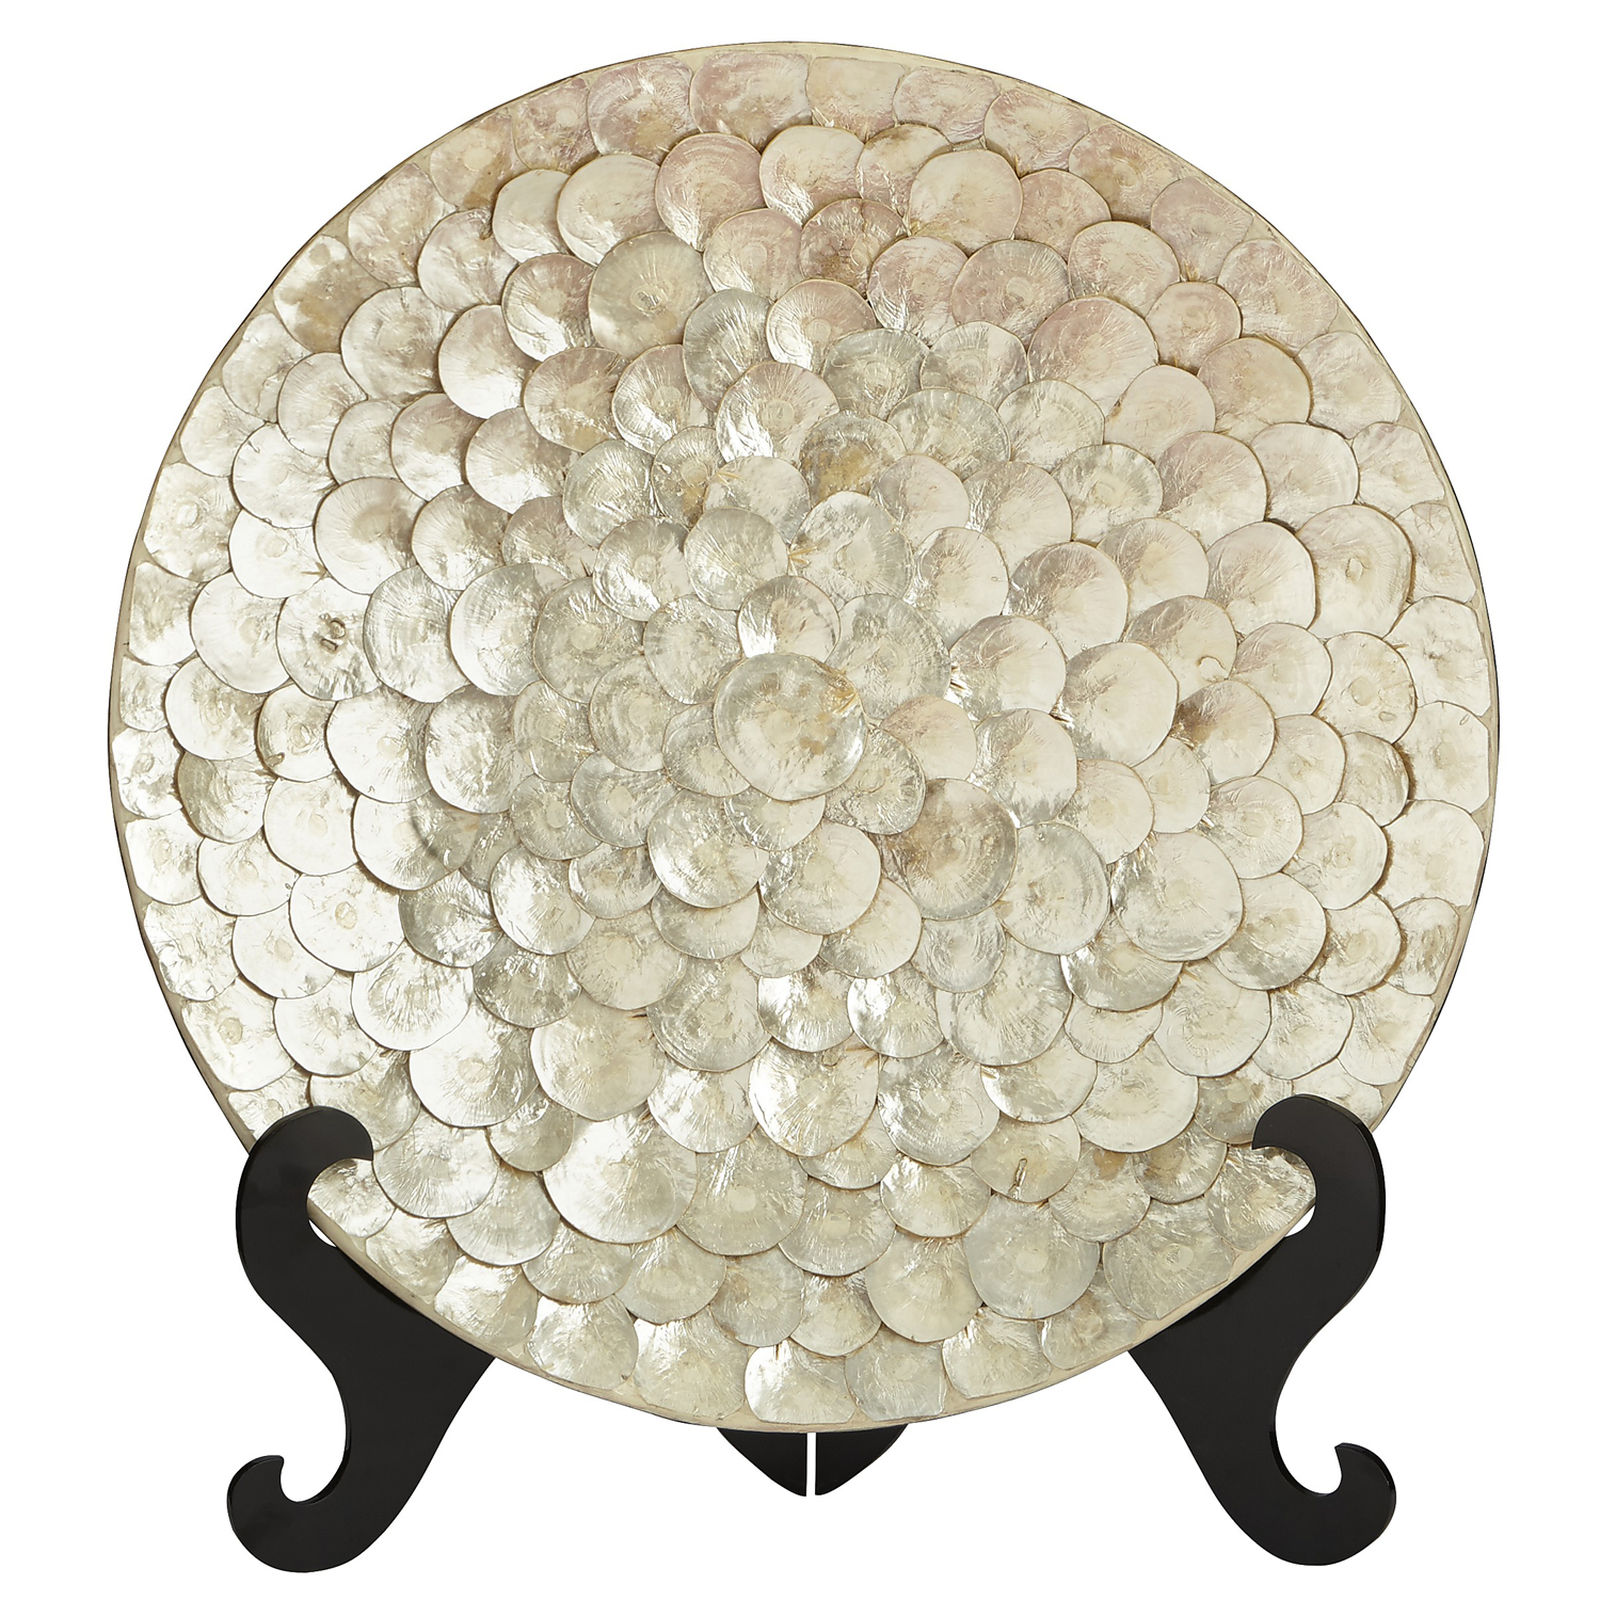 Unique Lighting Design using Capiz Shells for Home Decor Ideas: Amusing Capiz Shells Wall Mirror Gold With Light Capiz Shells For Your Home Lighting Ideas